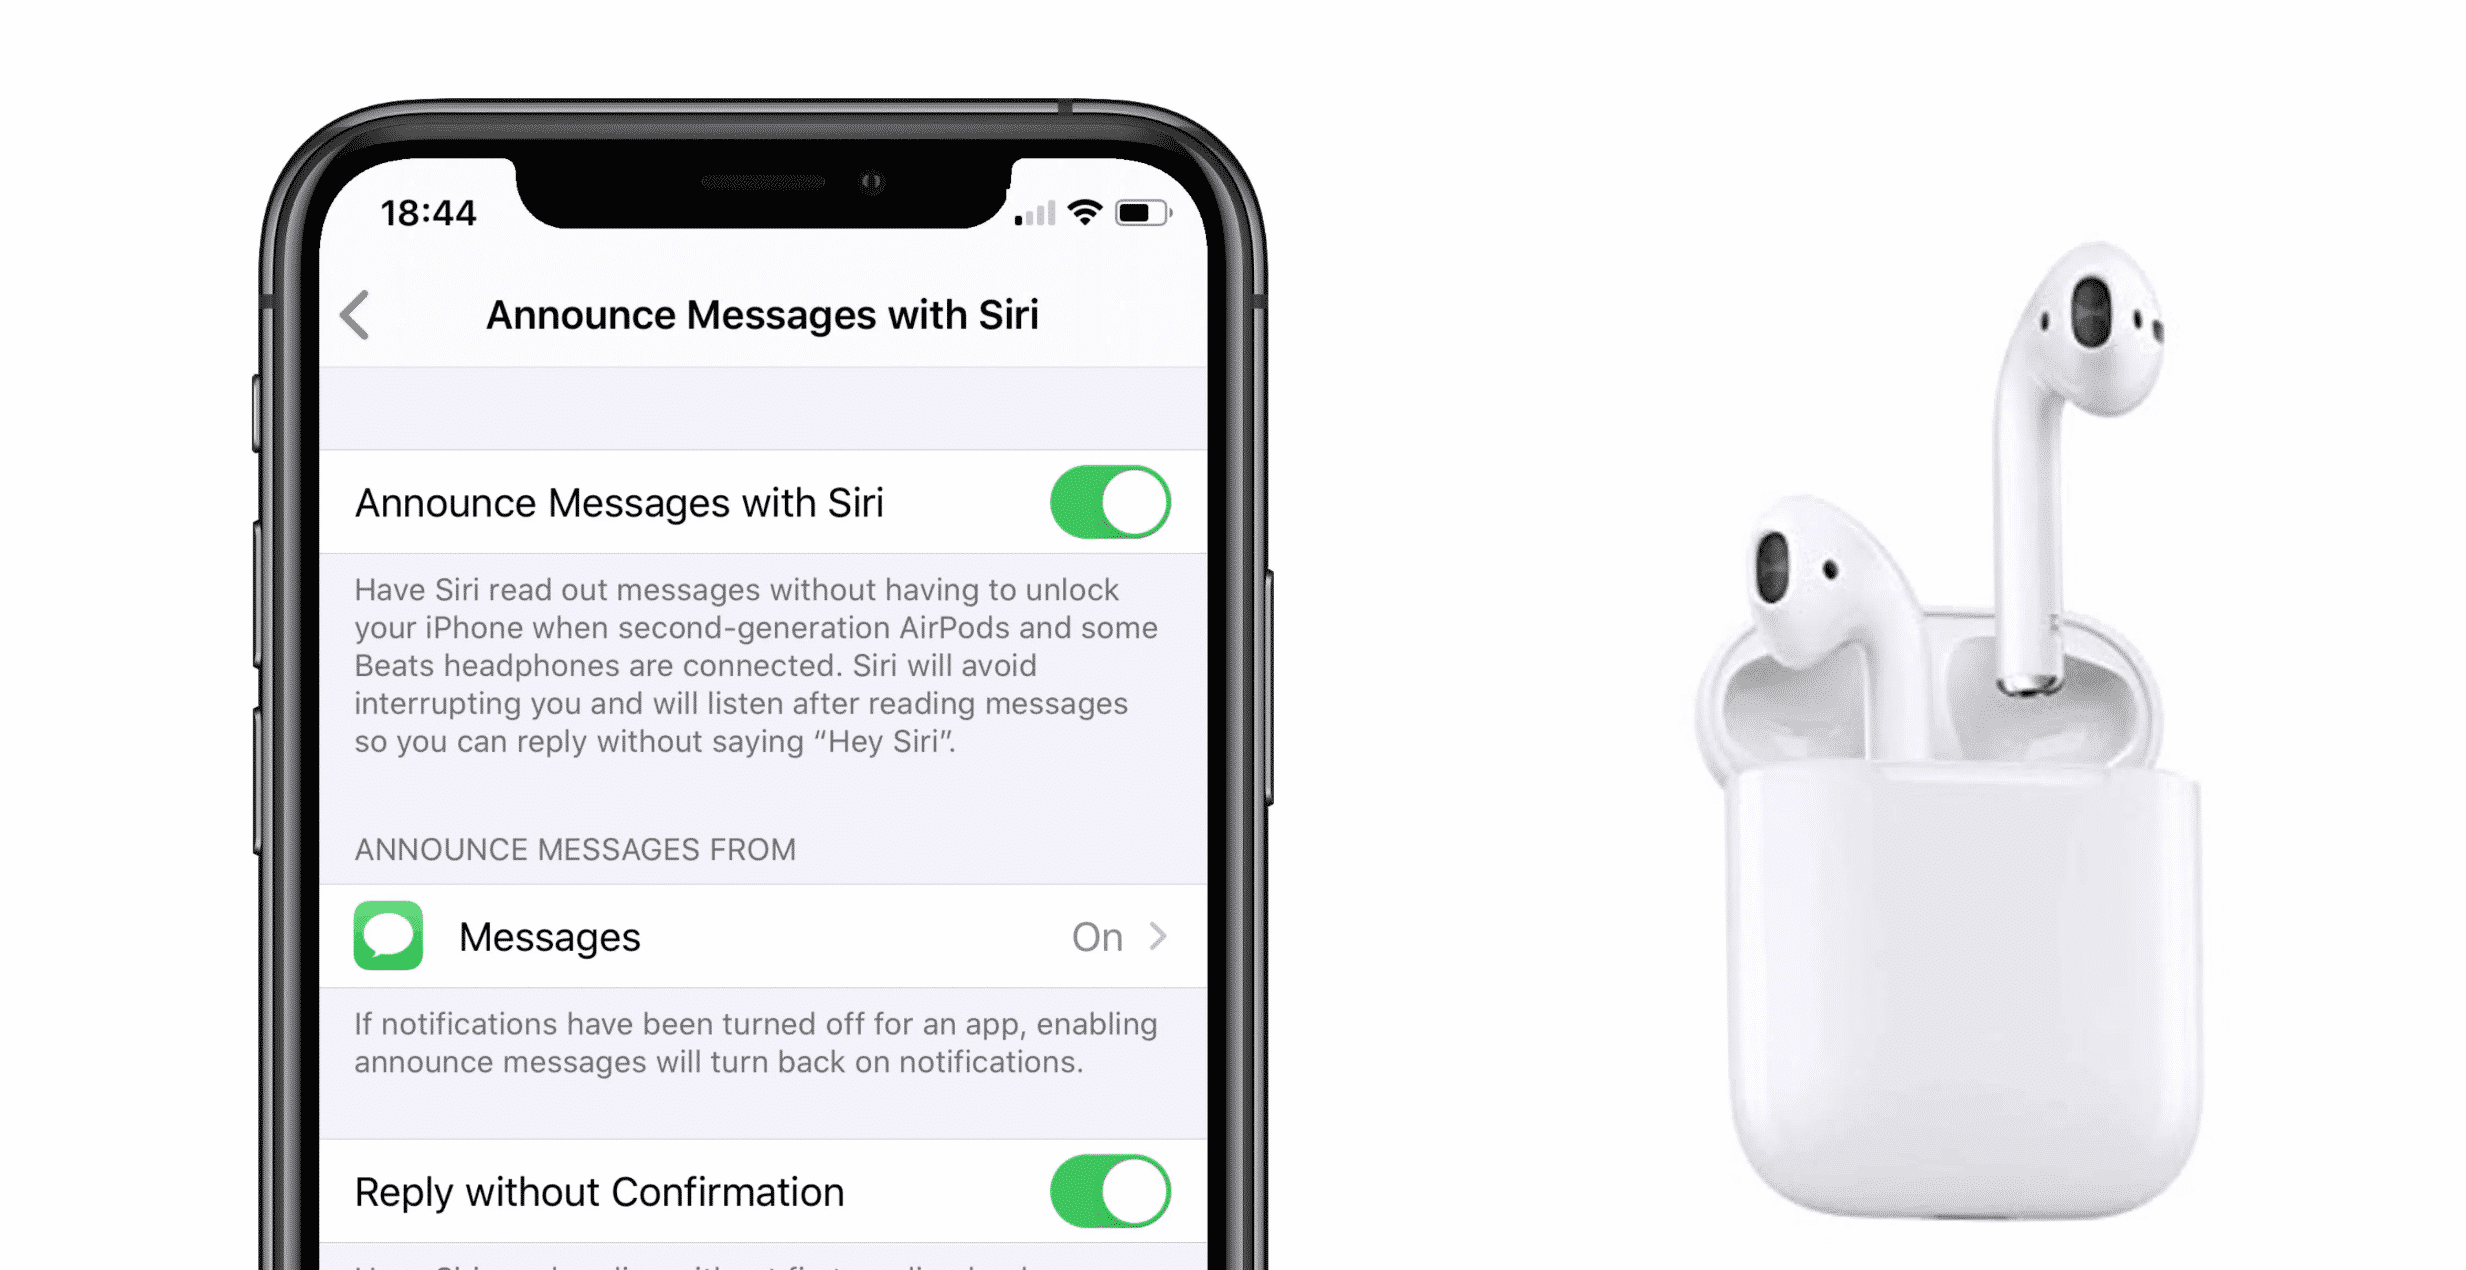 Ios 13 2 Brings Back Announce Message Feature For Airpods